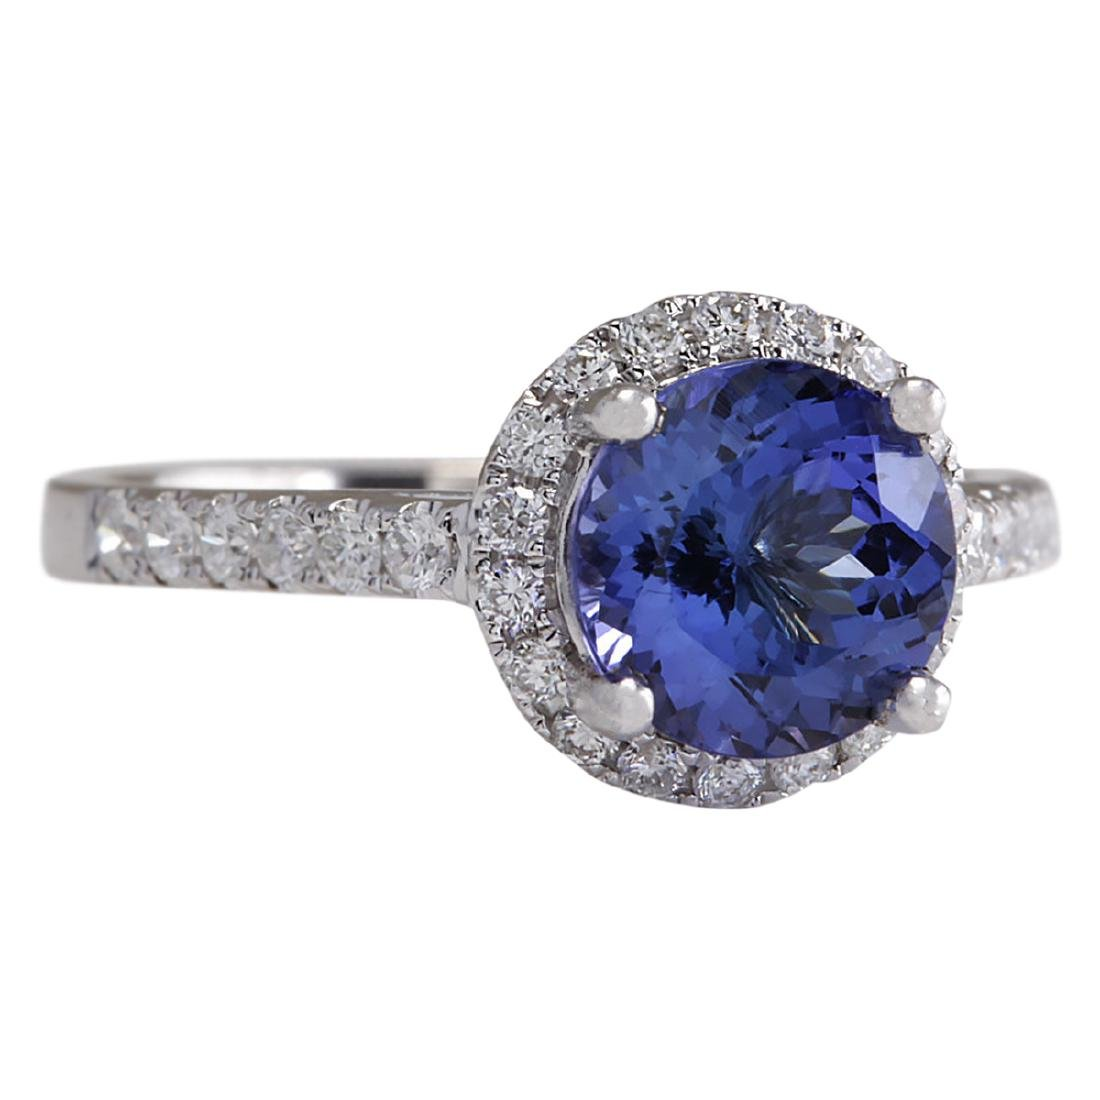 2.17 CTW Natural Blue Tanzanite And Diamond Ring In 18K - 2